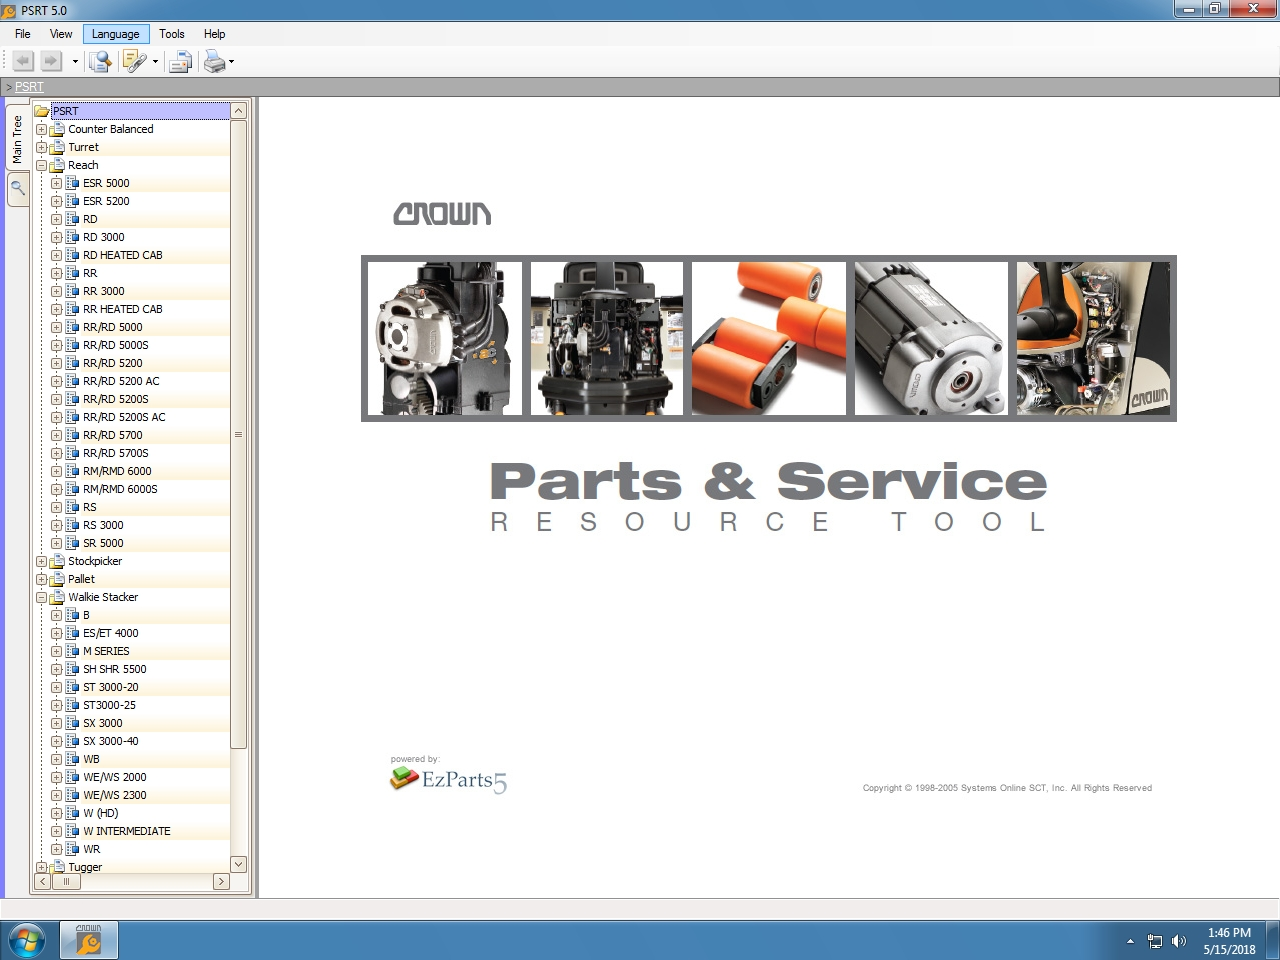 <b>CROWN FORKLIFTS PARTS & SERVICE RESOURCE TOOL PSRT [01/2019]</b><br>Spare parts catalog, repair manuals, wiring and hydraulic diagrams